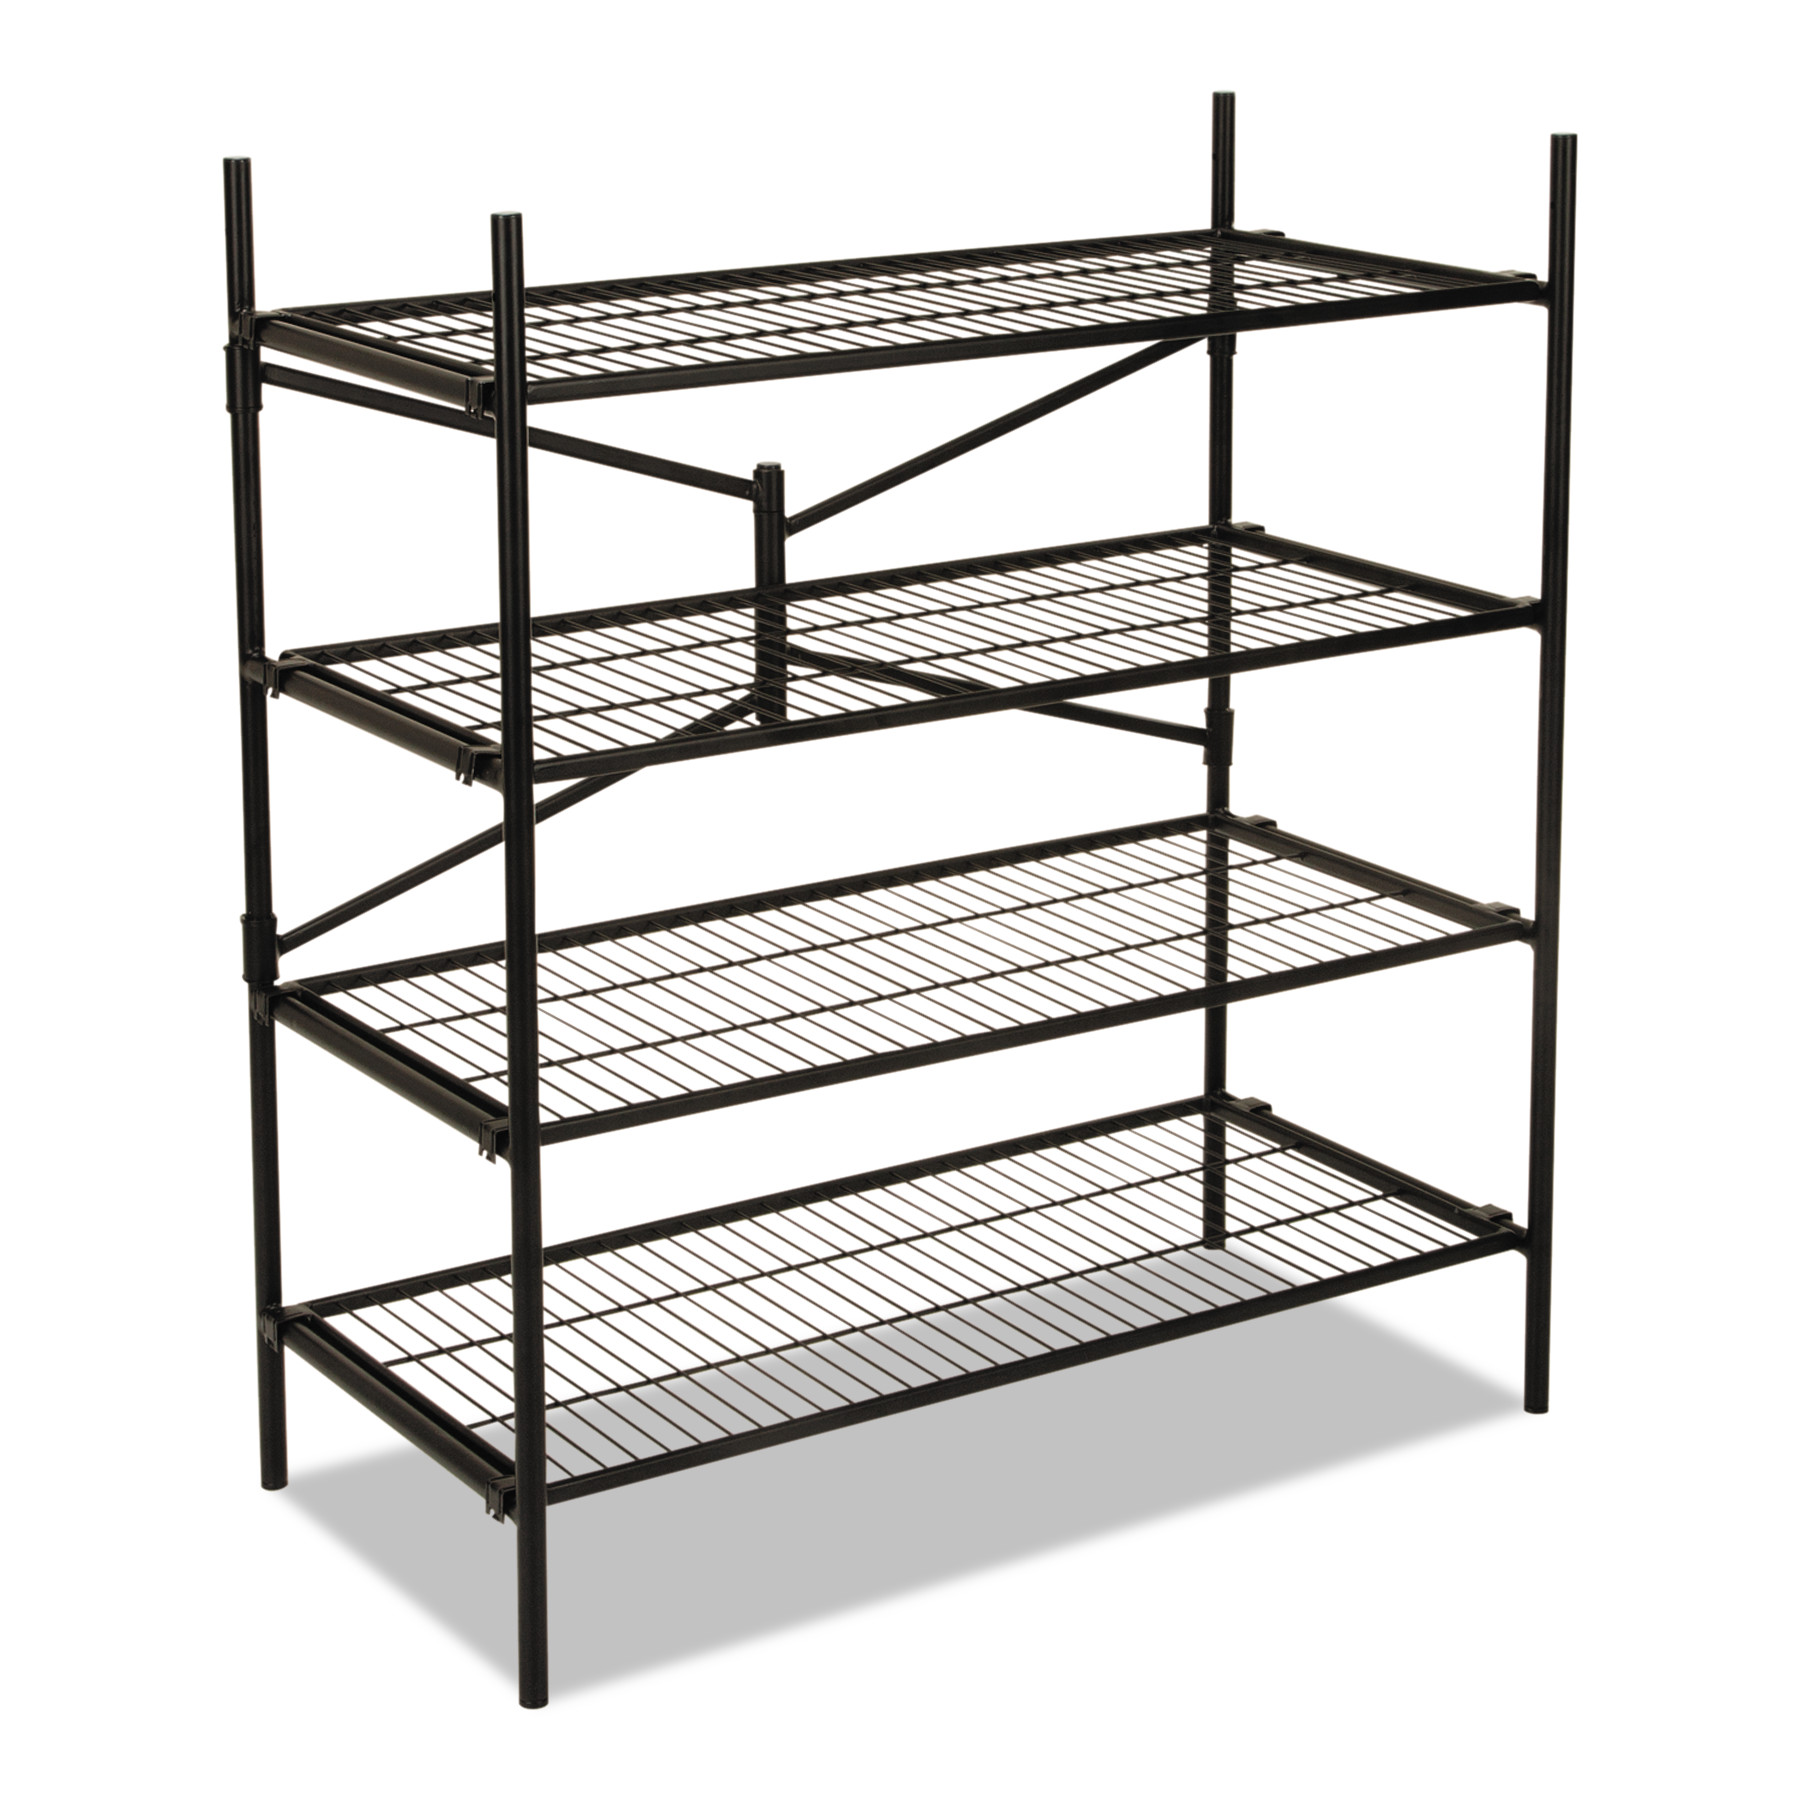 Cosco Instant Storage Shelving Unit, 4 Shelves, 42 3/4 x 20 3/4 x 47 3/4, Black